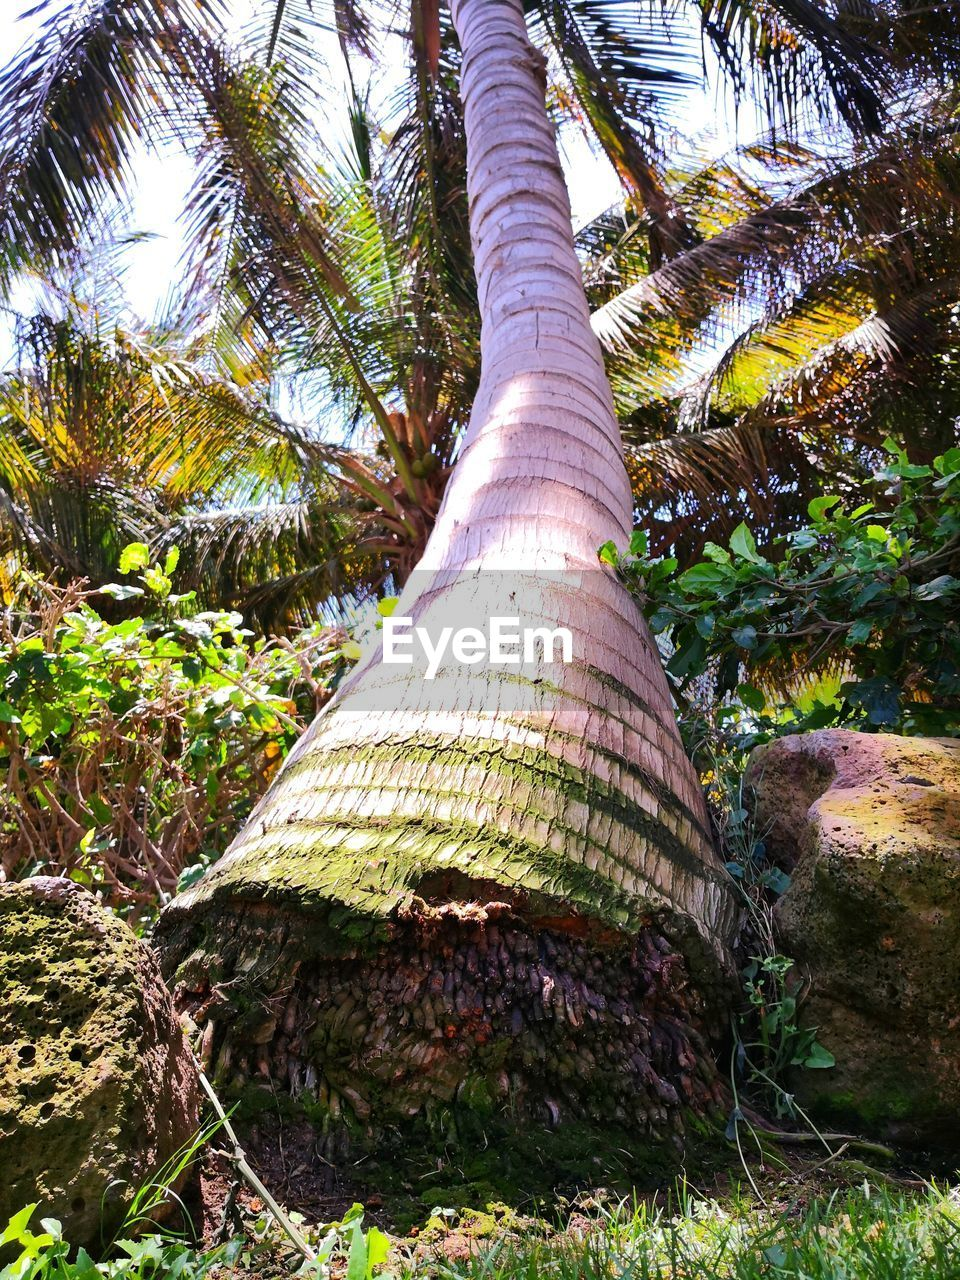 plant, tree, trunk, tree trunk, nature, day, growth, no people, land, sunlight, forest, low angle view, beauty in nature, tranquility, outdoors, tall - high, grass, palm tree, branch, tropical climate